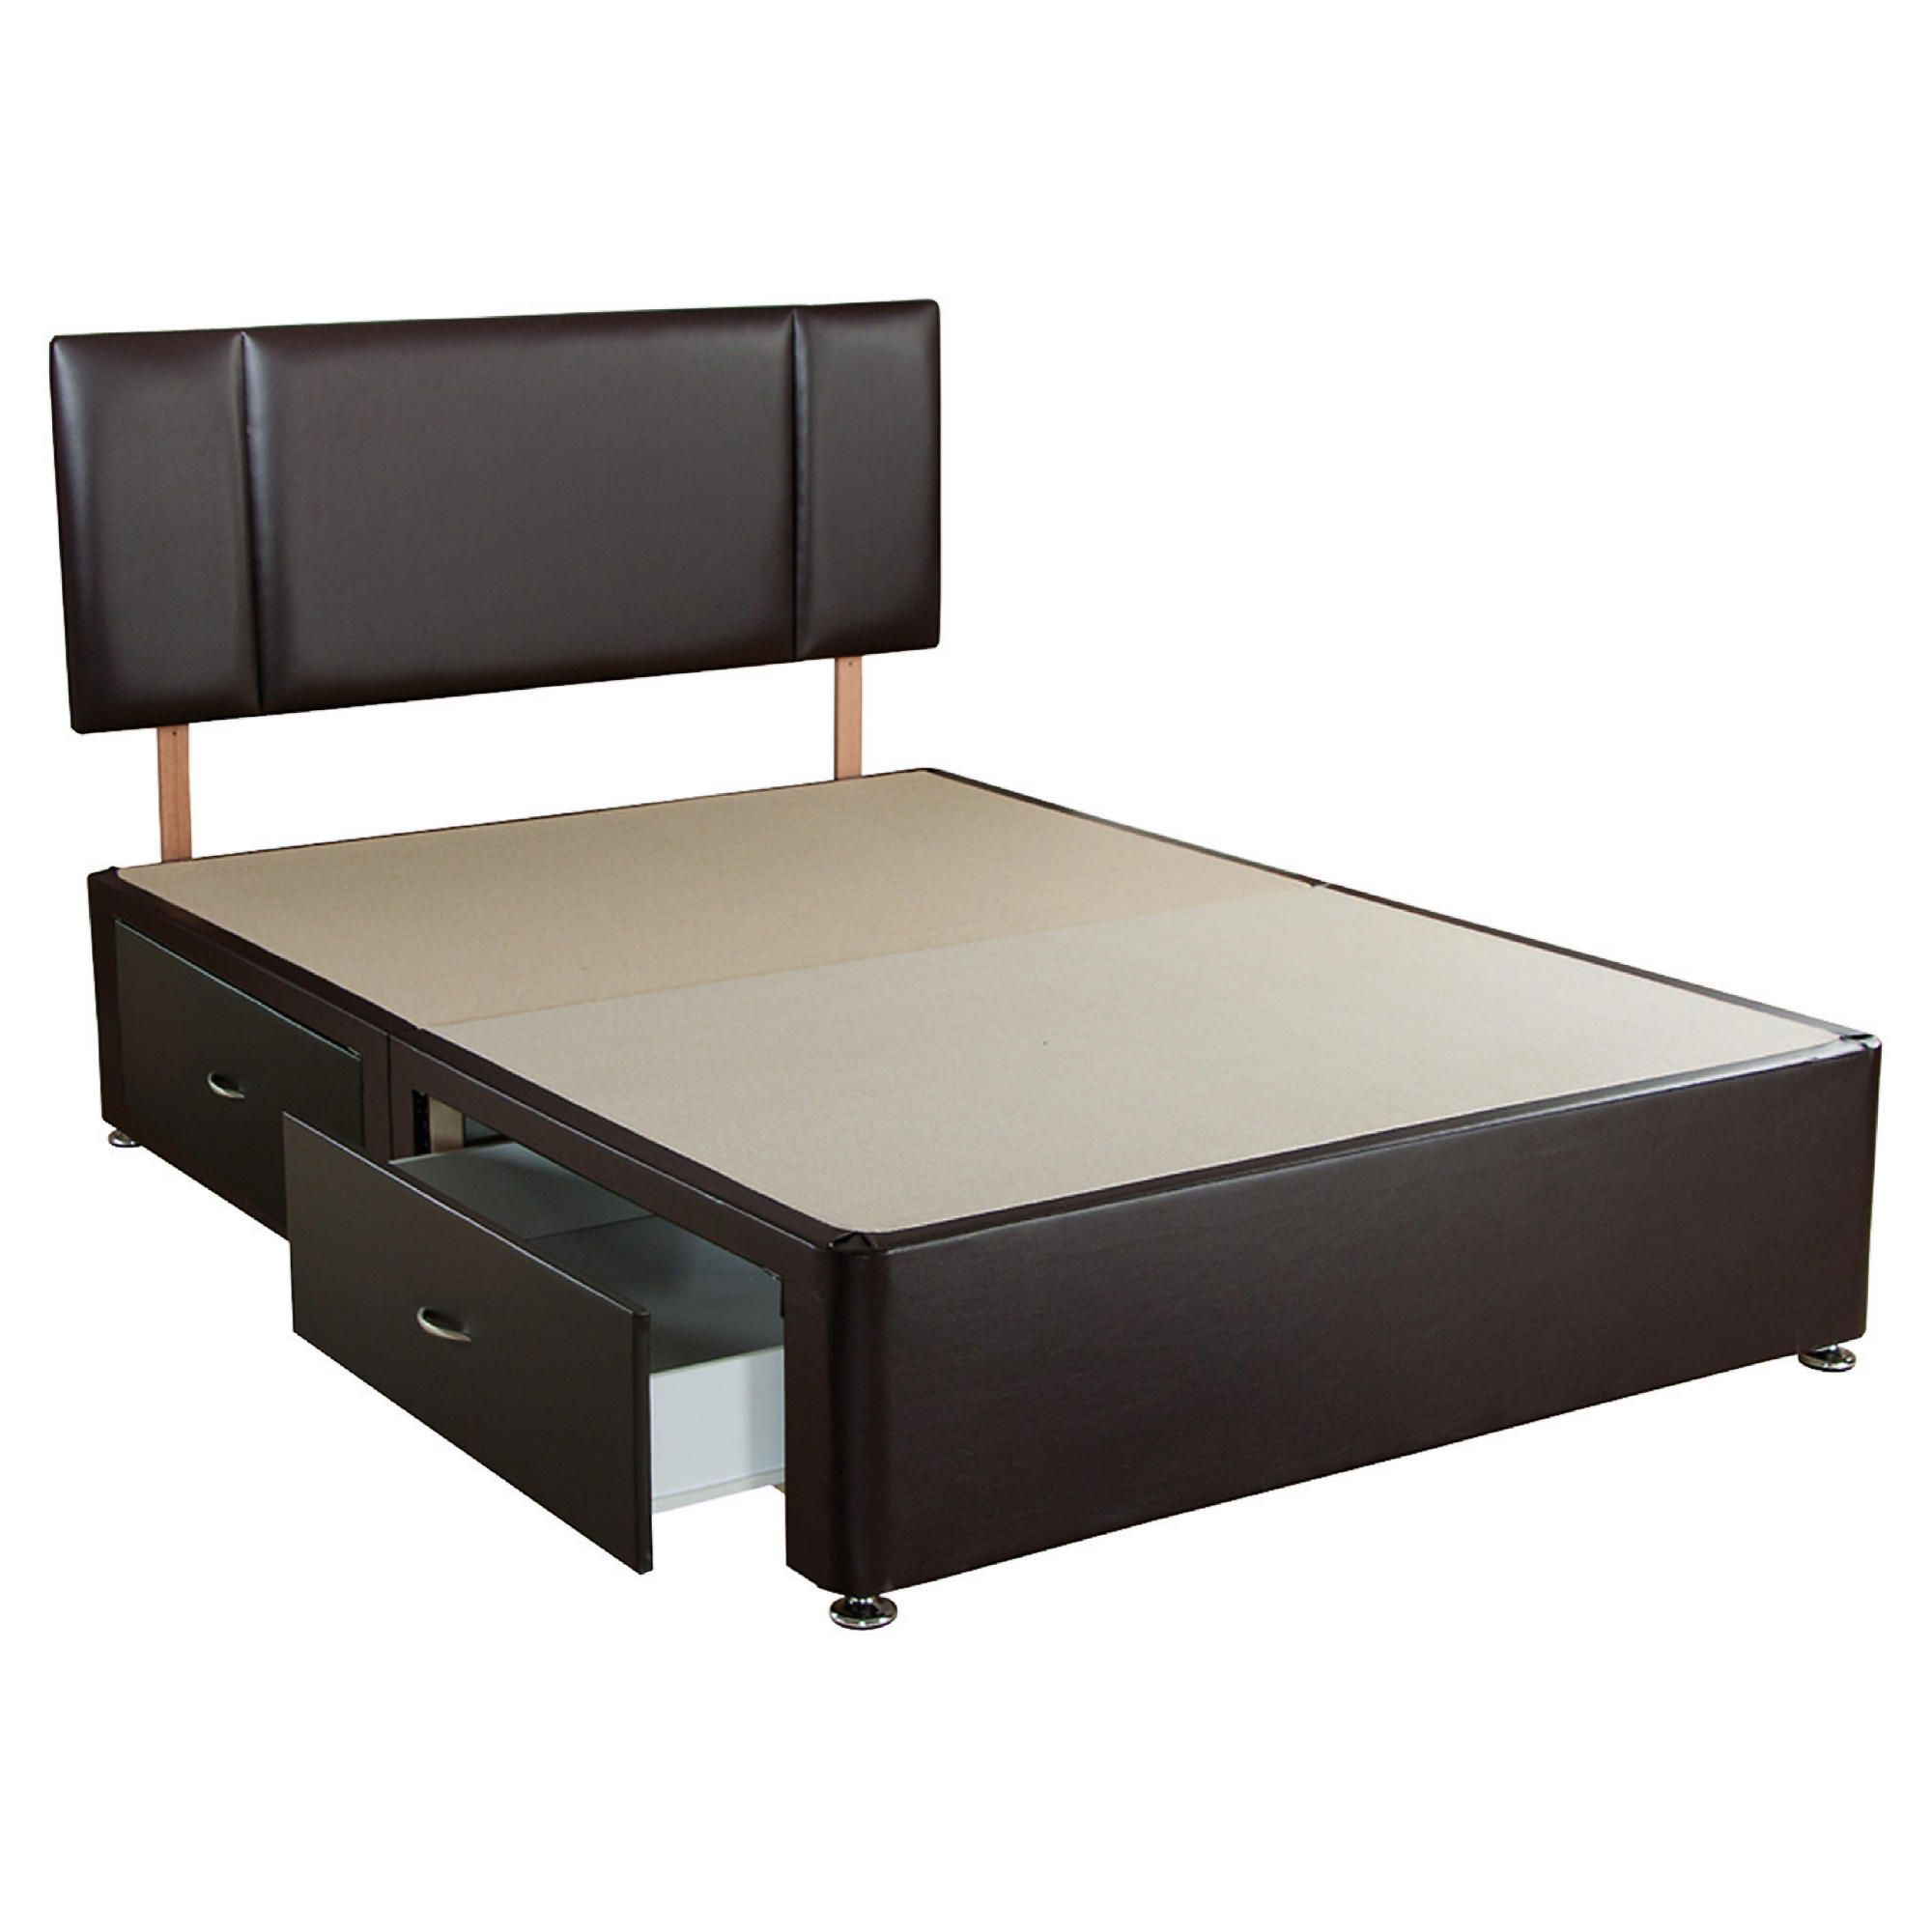 Home and garden furniture airsprung mercury trizone for Divan bed with drawers